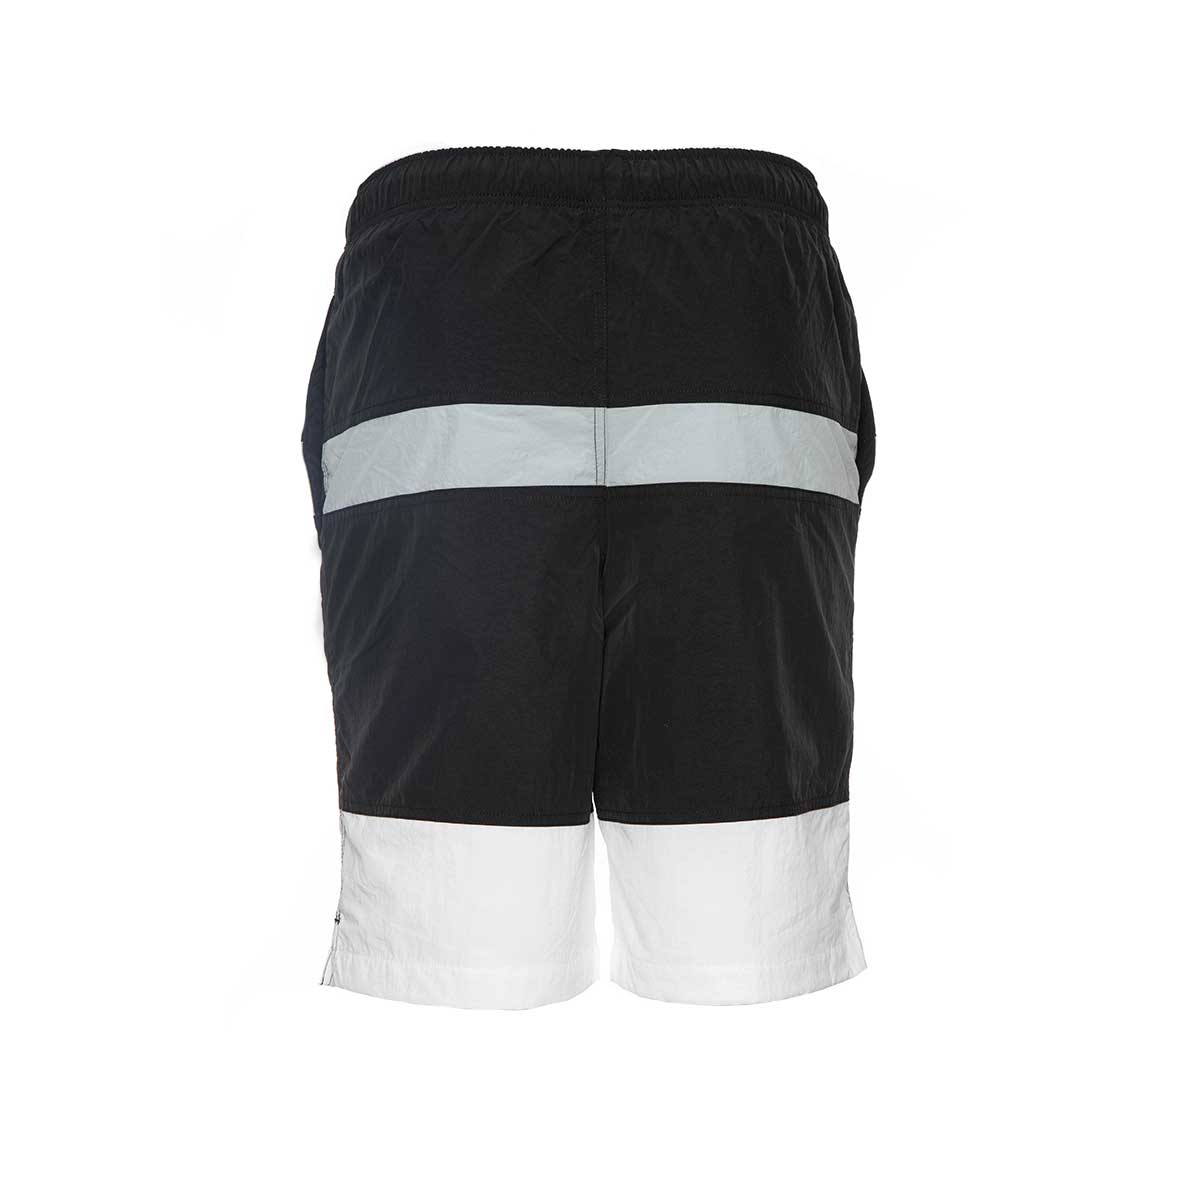 Champion Life Men's Woven Shorts Black